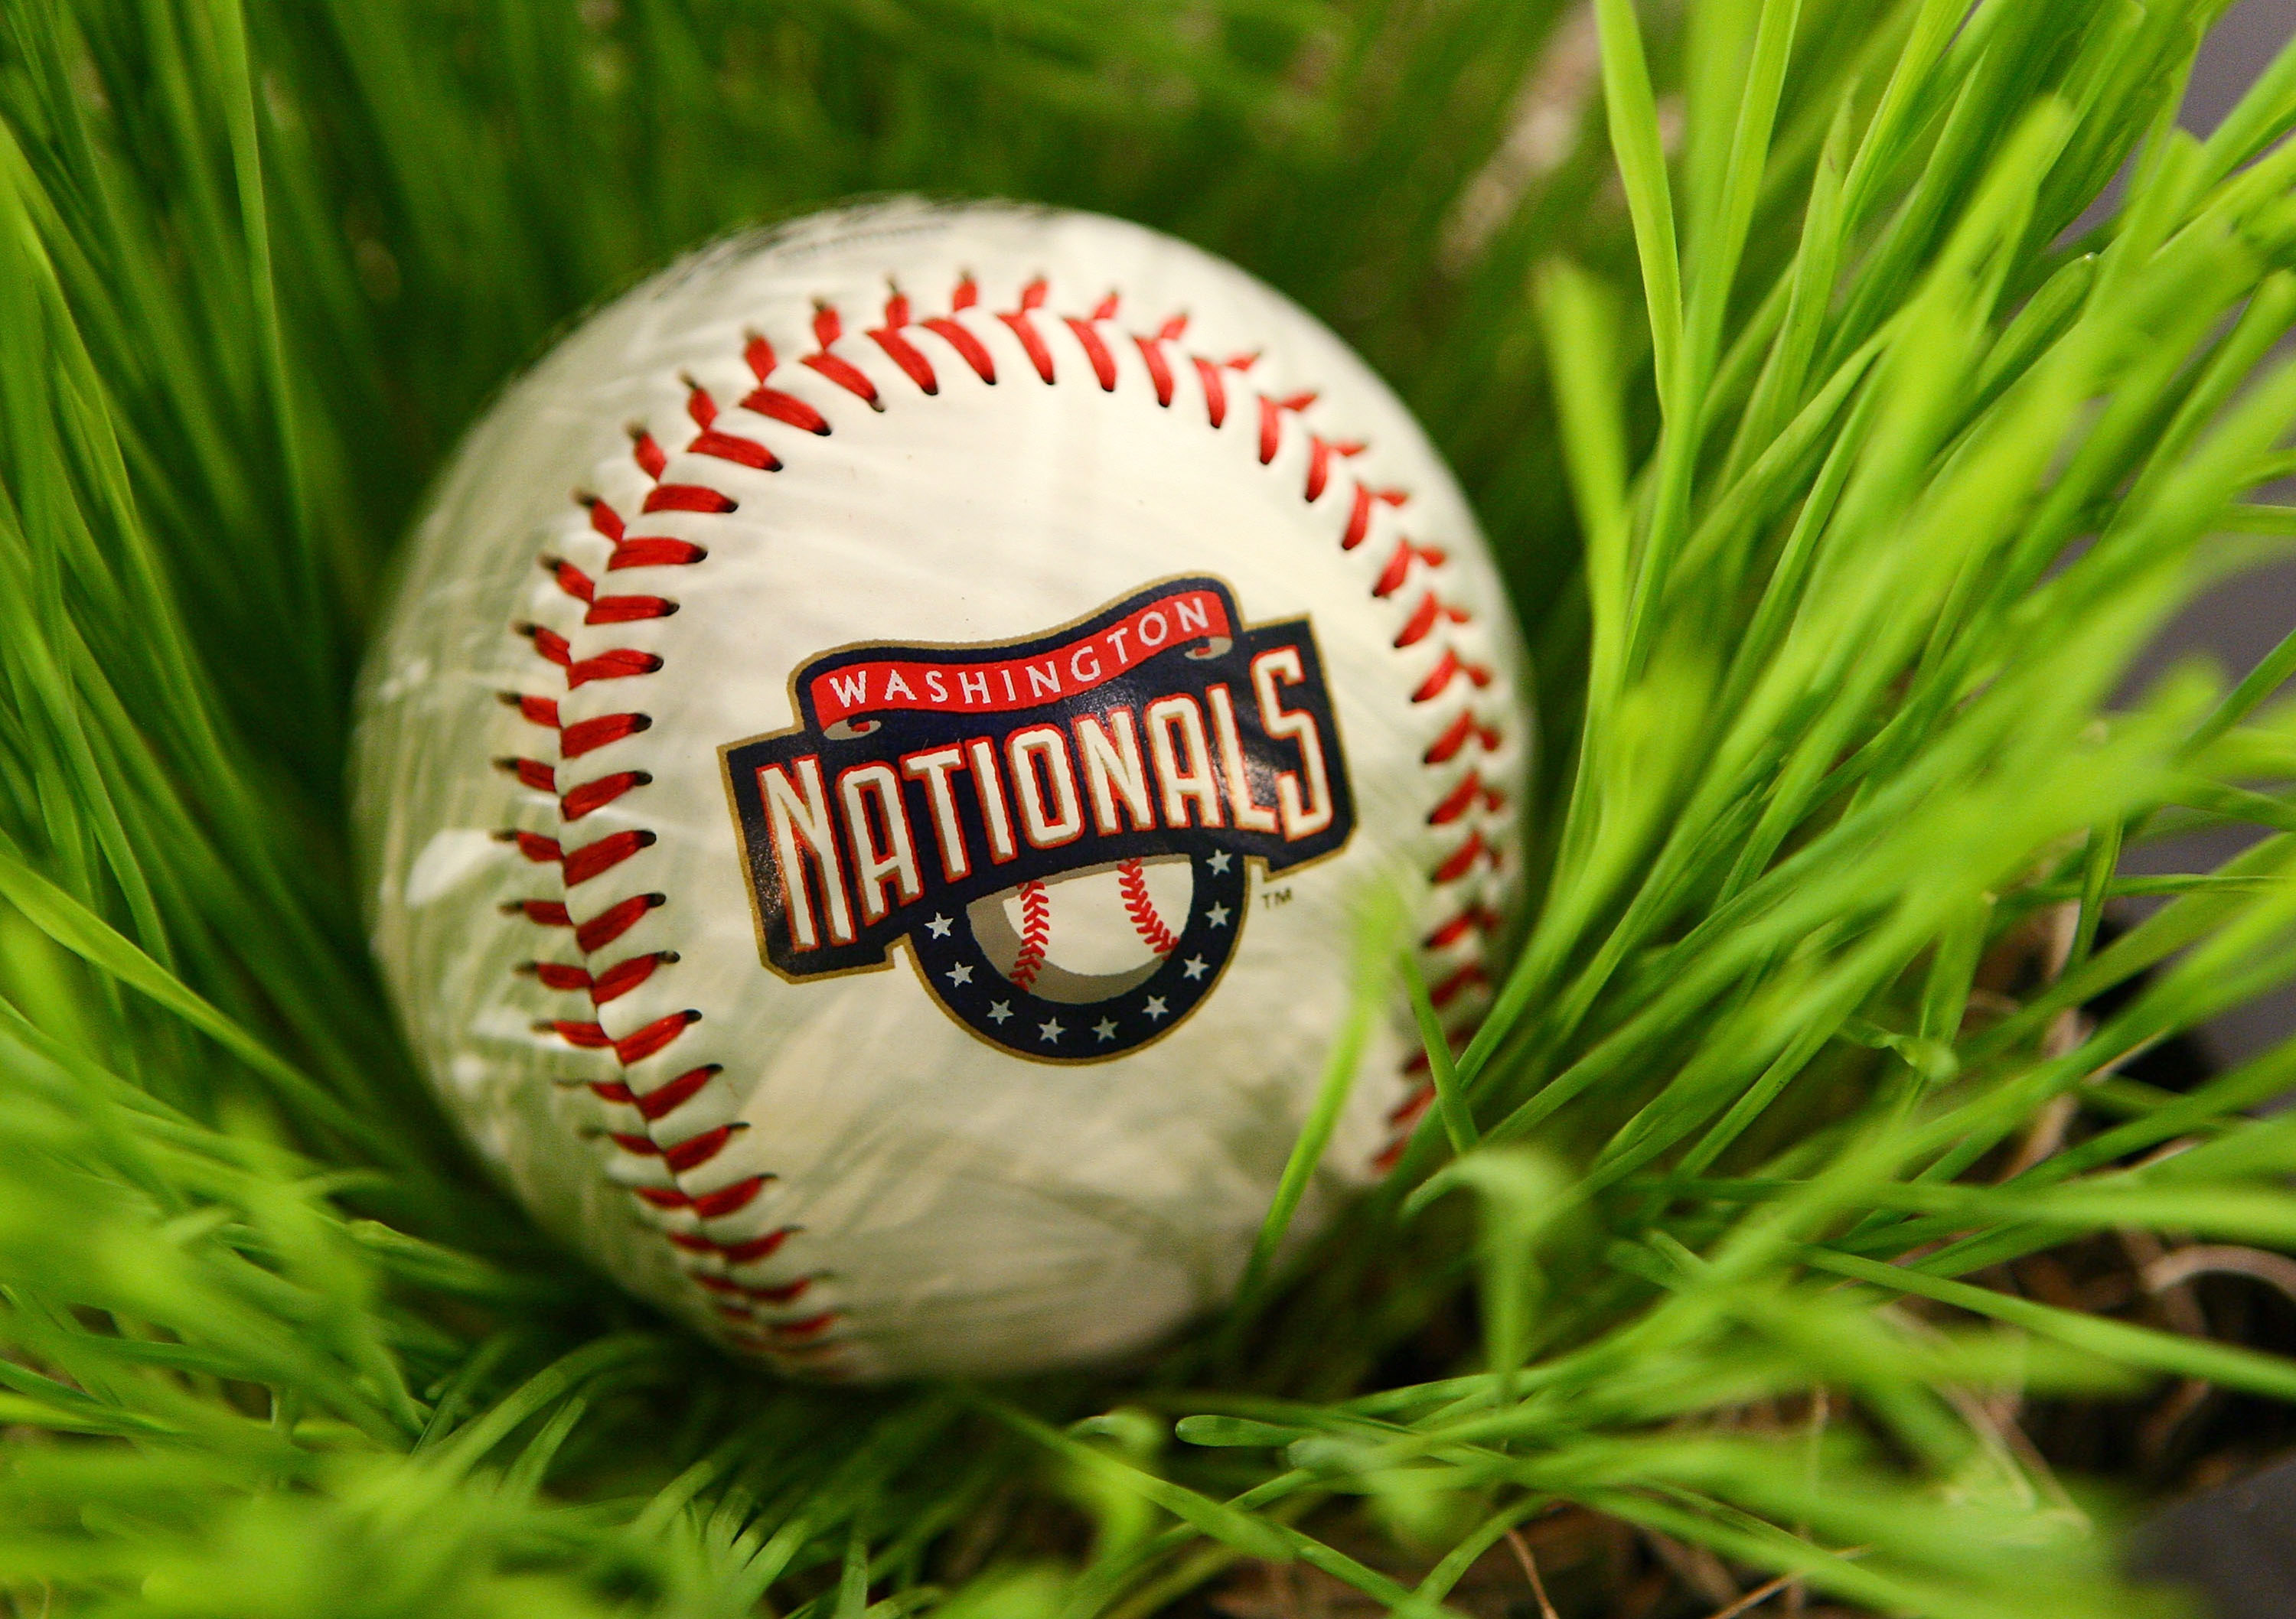 SECAUCUS, NJ - JUNE 07:  A detailed view of a Washington National baseball during the MLB First Year Player Draft on June 7, 2010 held in Studio 42 at the MLB Network in Secaucus, New Jersey.  (Photo by Mike Stobe/Getty Images)